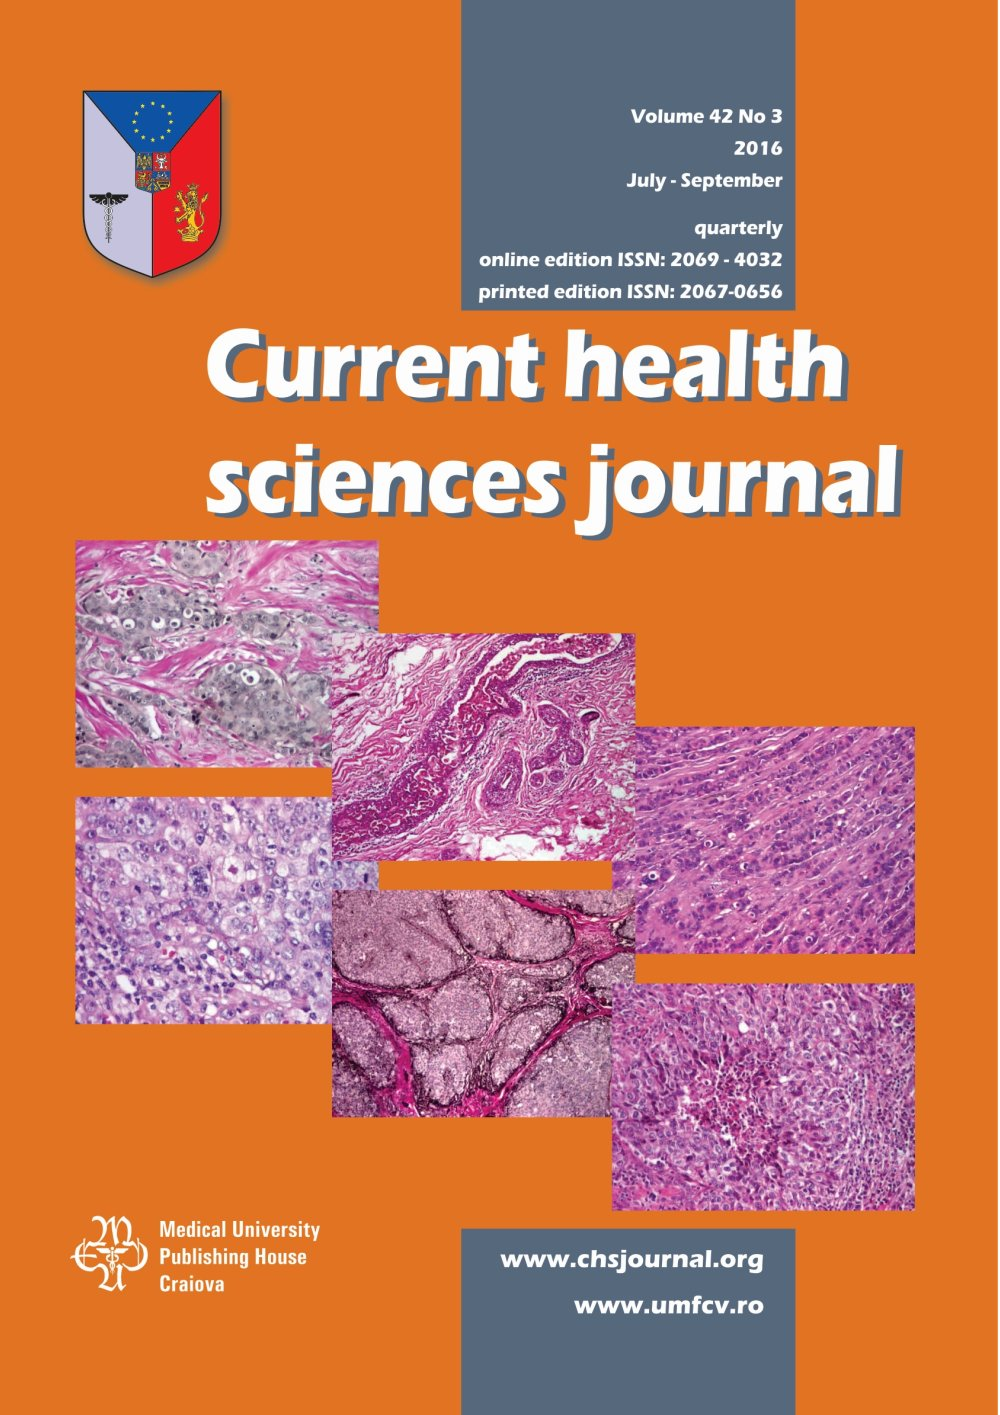 Current Health Sciences Journal, vol. 42 no. 3, 2016